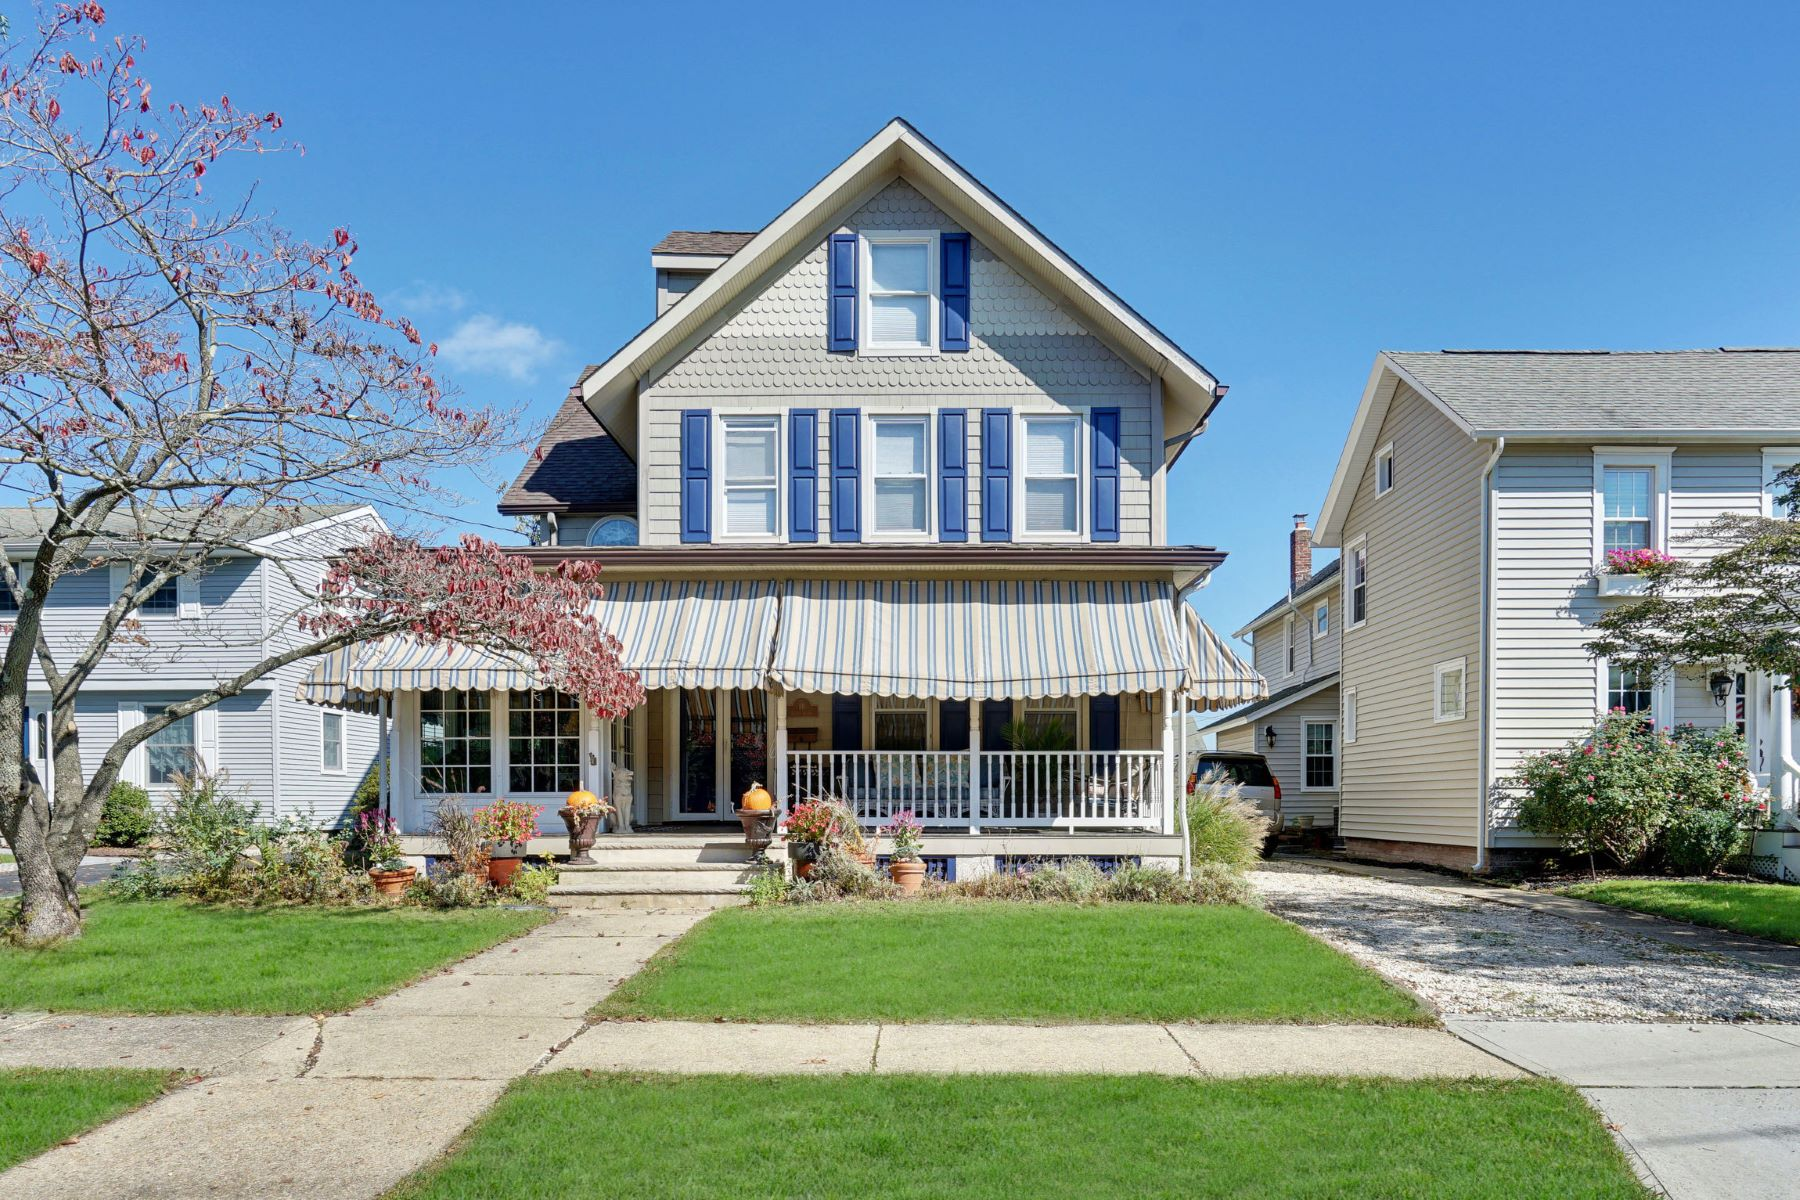 Single Family Homes for Sale at Classic Custom Victorian 18 Curtis Avenue, Manasquan, New Jersey 08736 United States